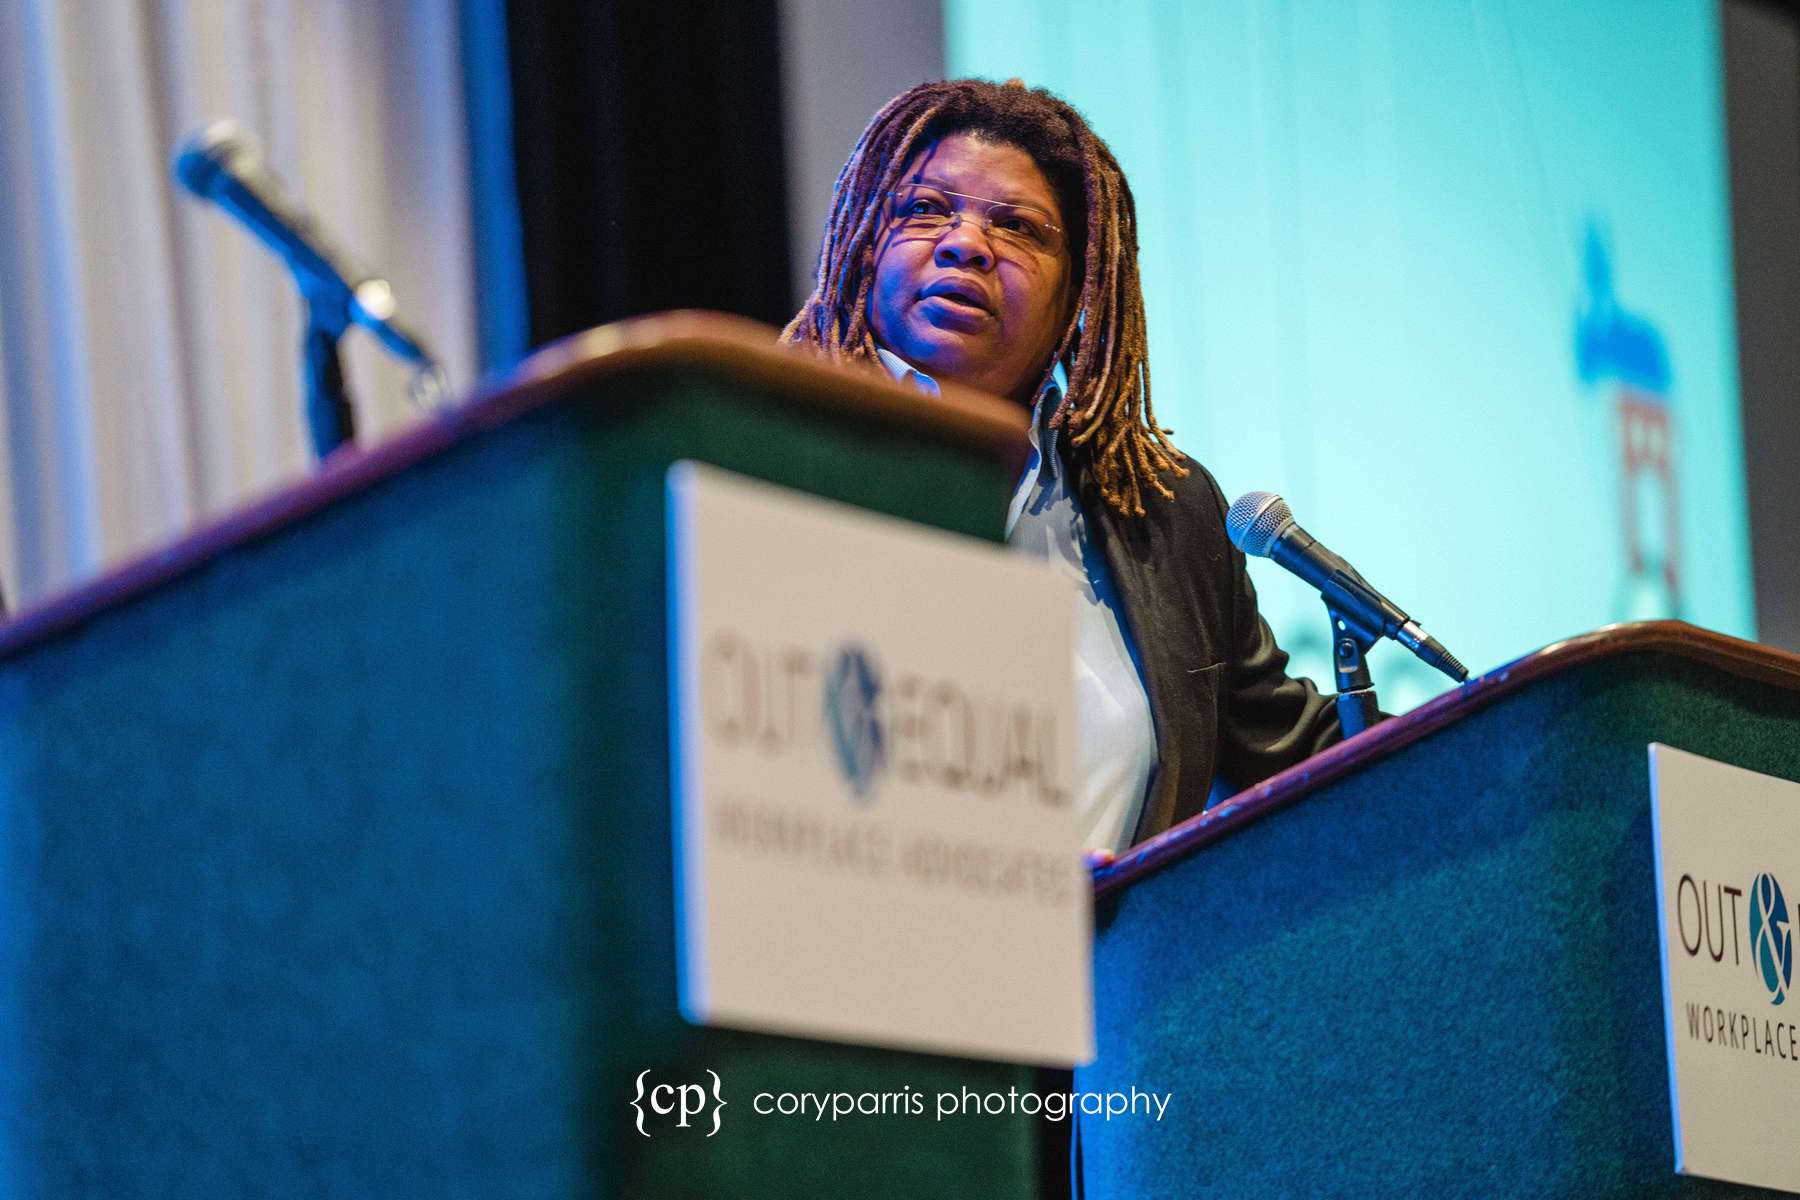 066-seattle-convention-photography.jpg